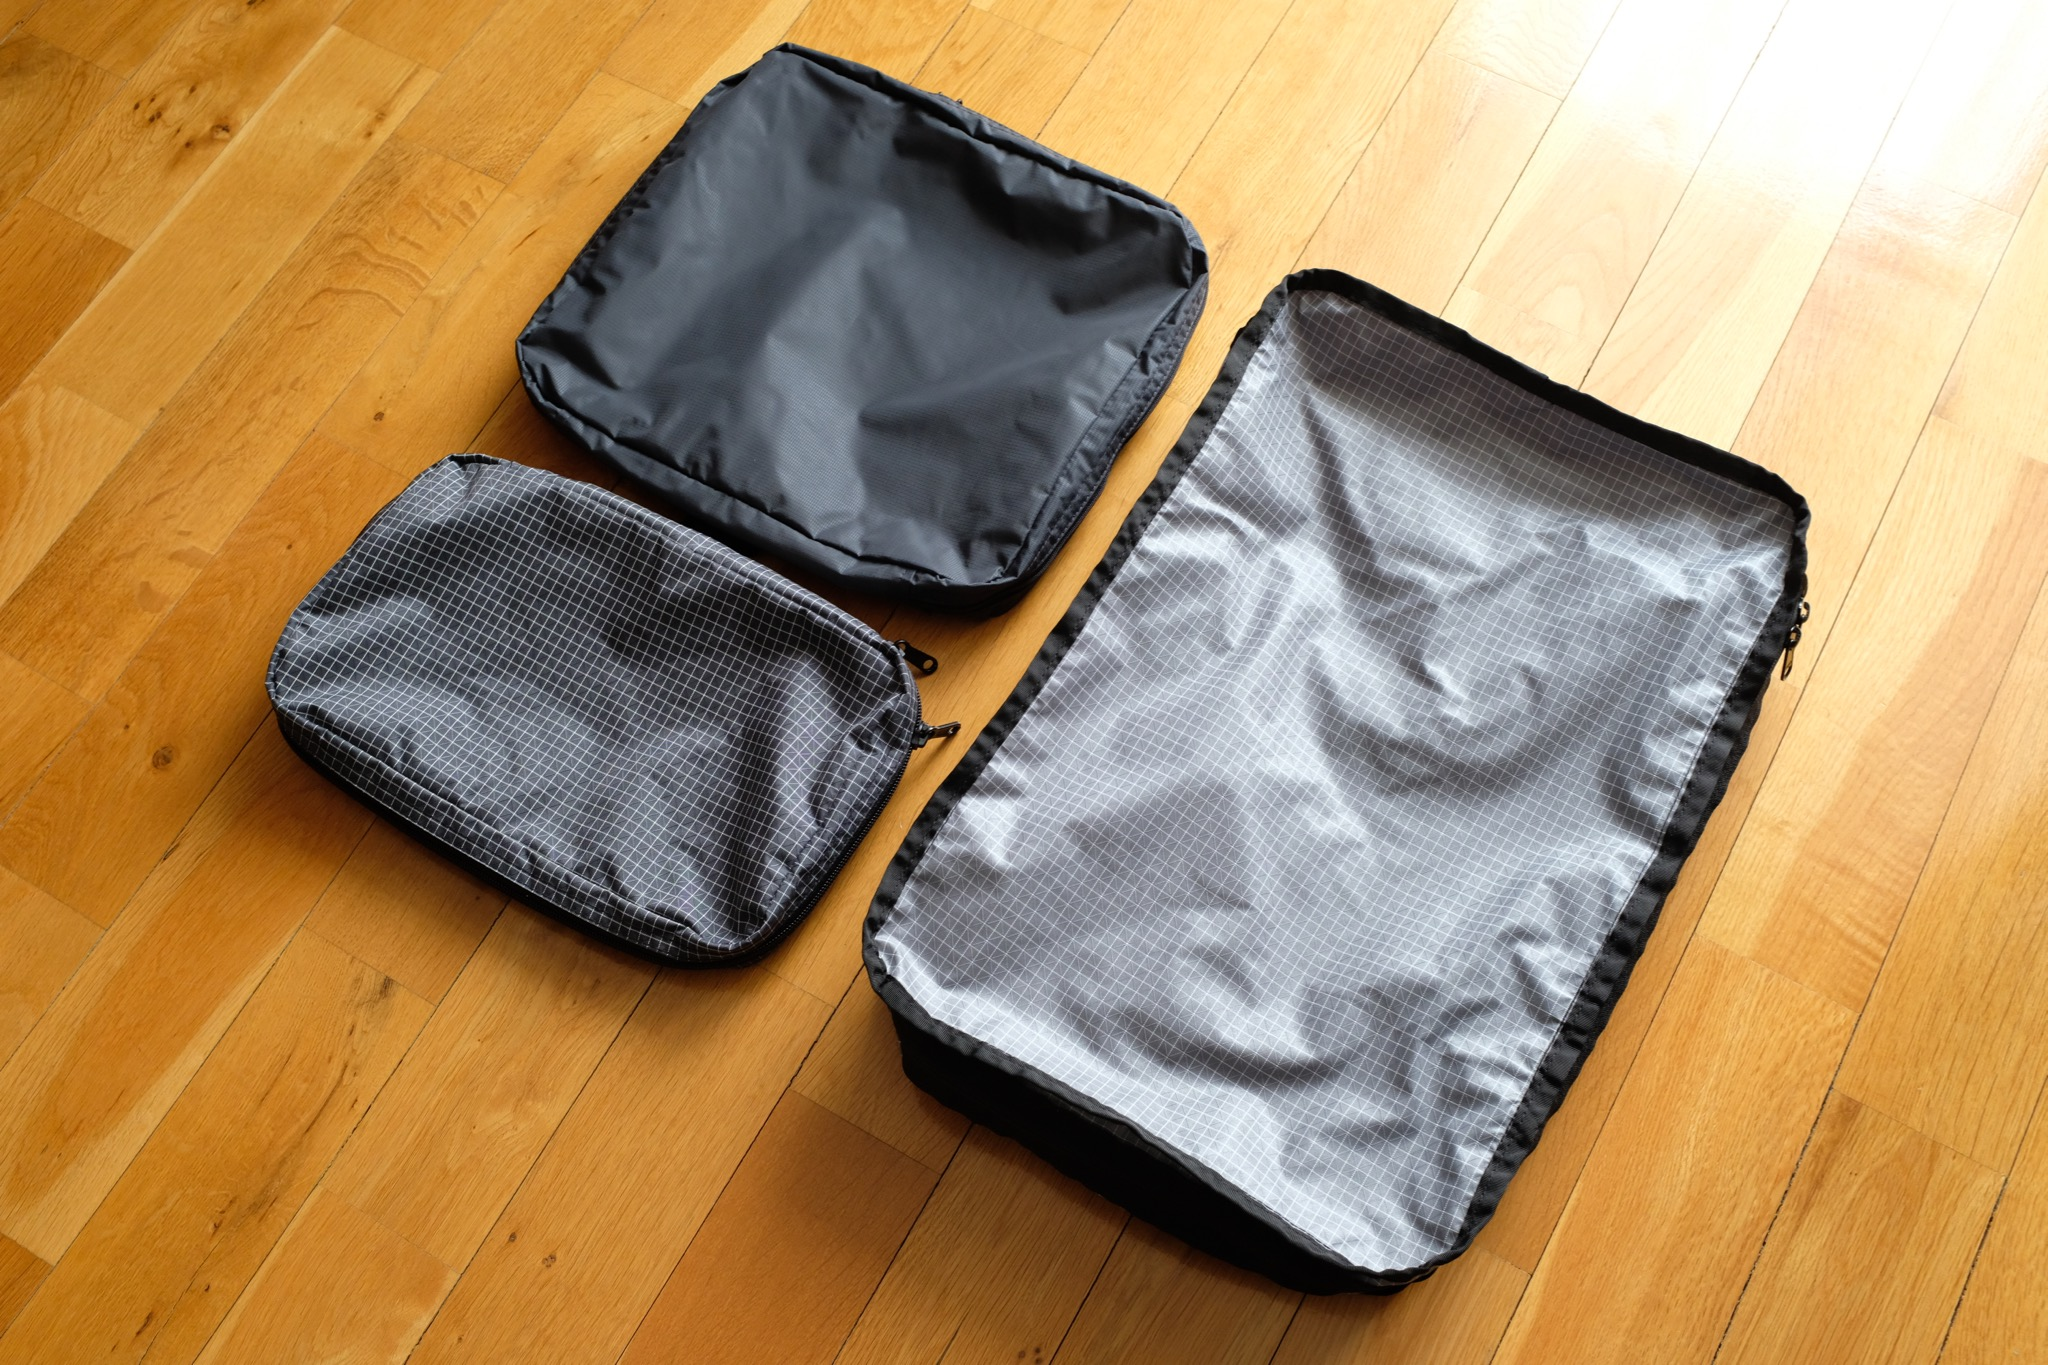 Small, Medium and Large packing cubes